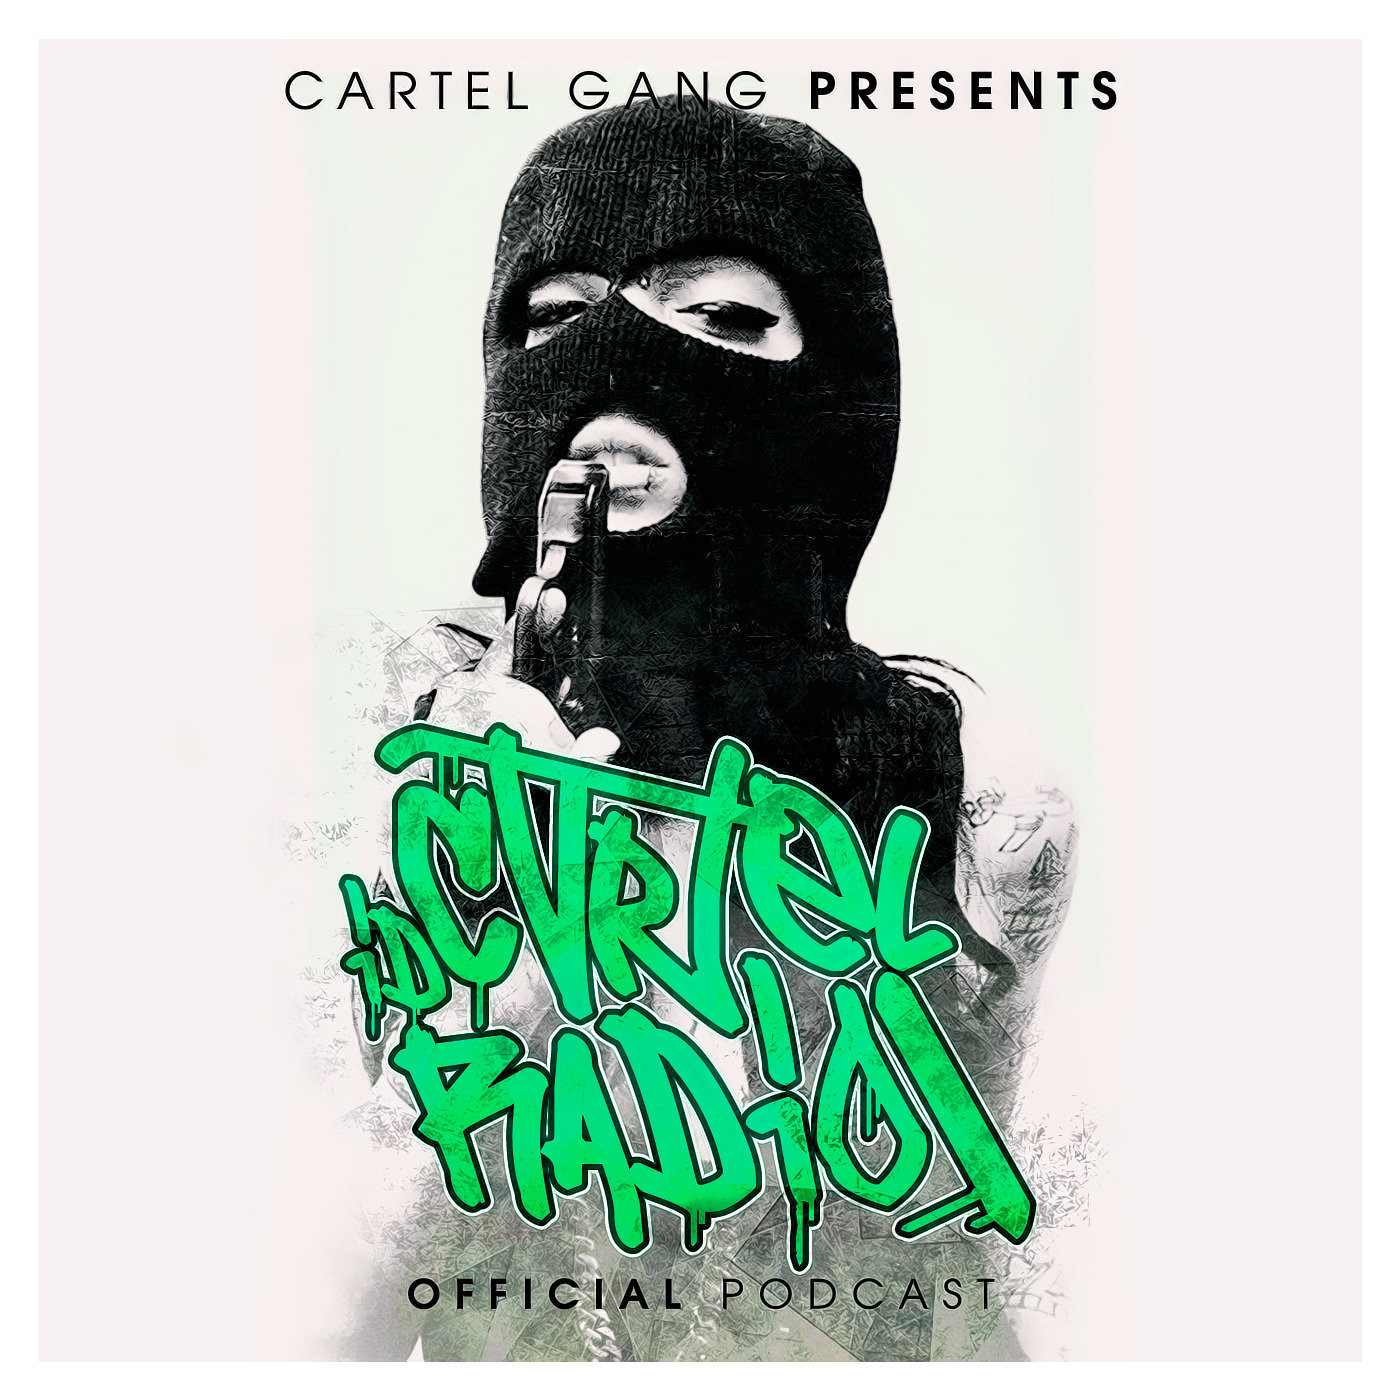 <![CDATA[Cartel ID Radio (Official Podcast)]]>